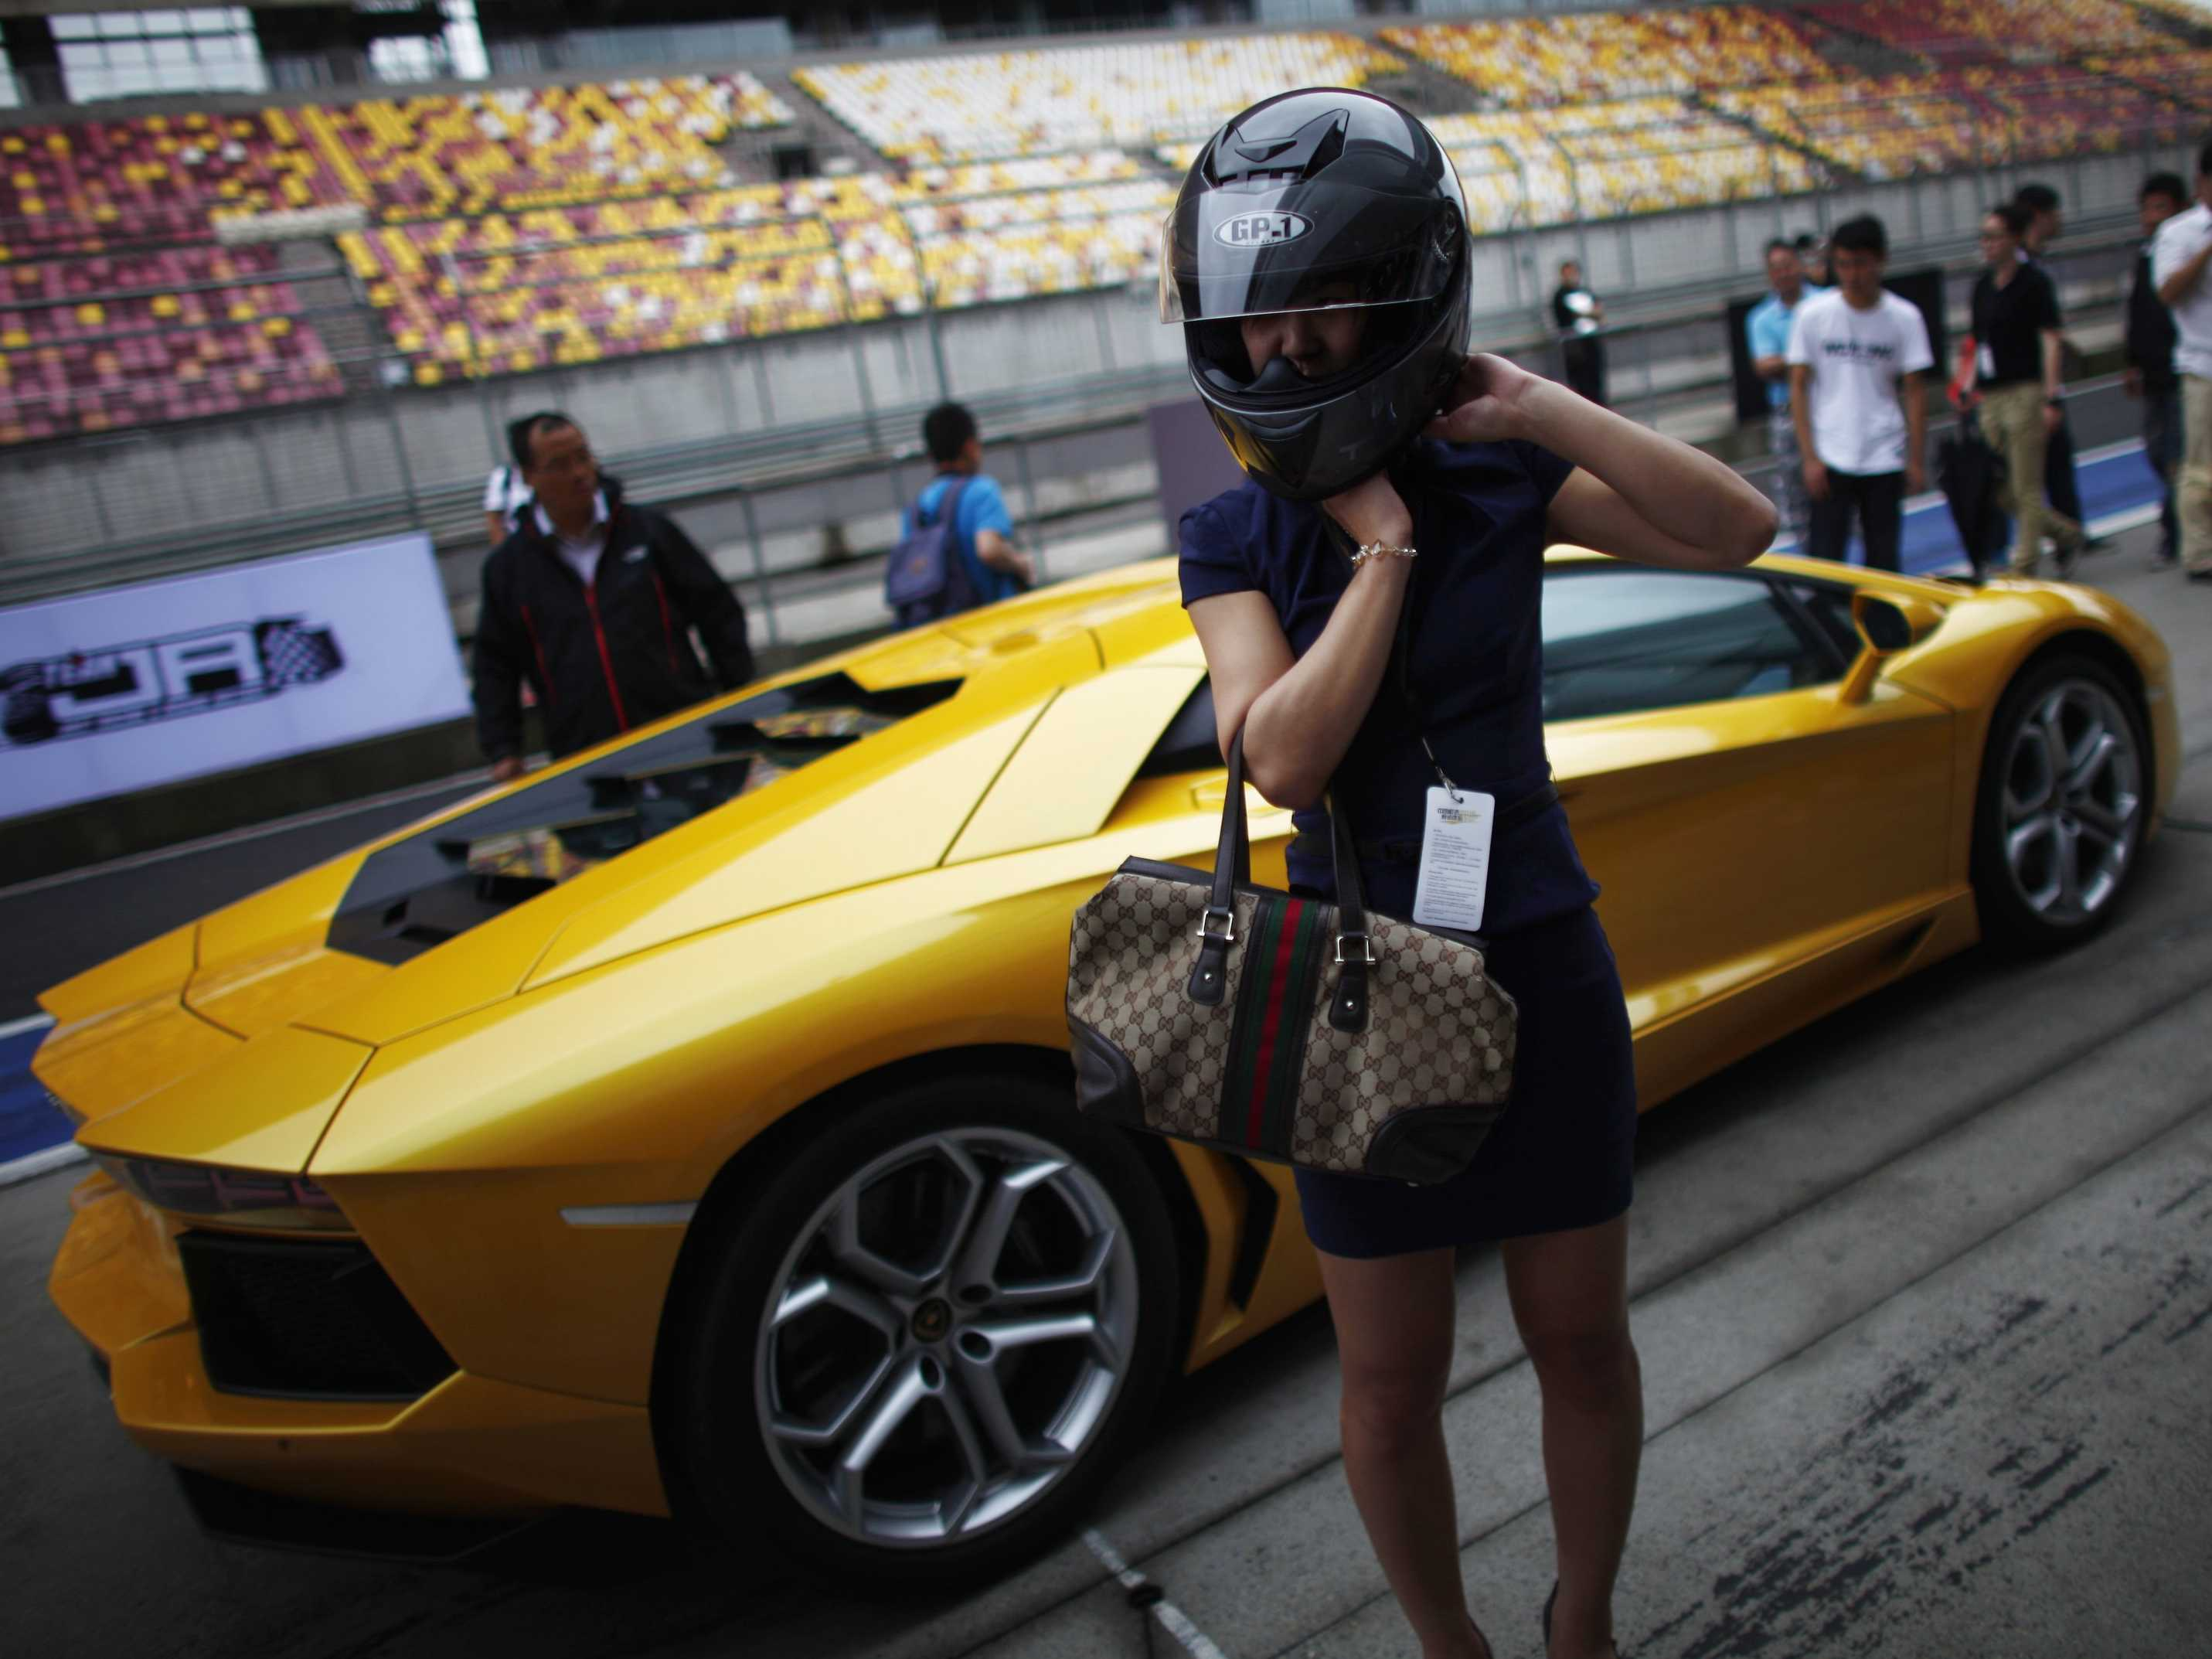 Douyin top tier cities luxury spender userbase may shift